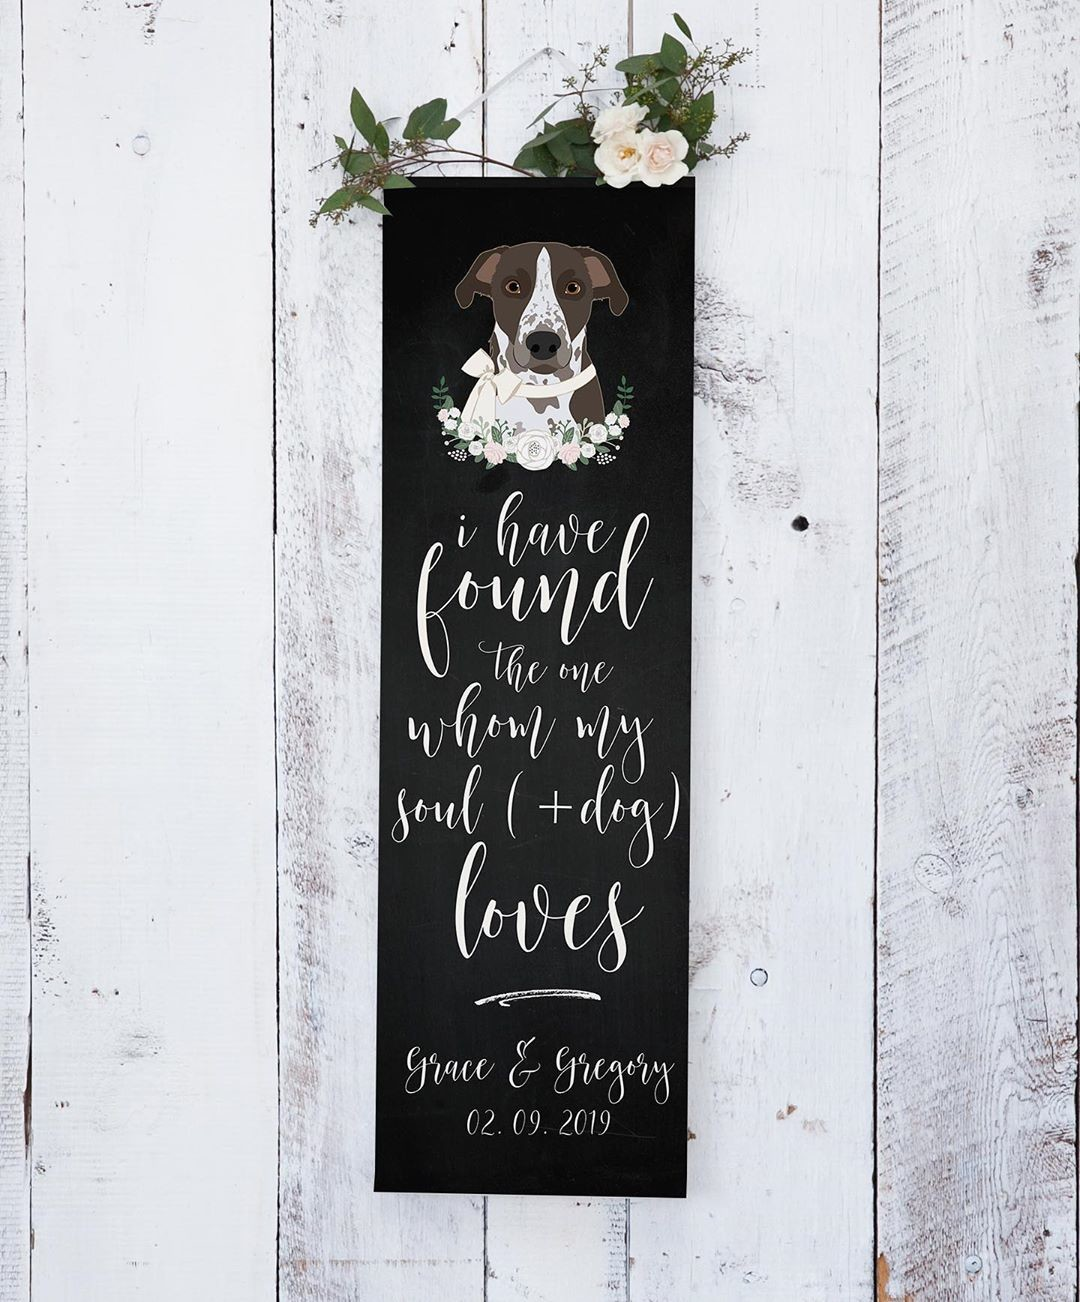 Who else is totally picturing a 101 Dalmatians meet-cute when you see this banner? Just us? 😍 When your dog is family, you just